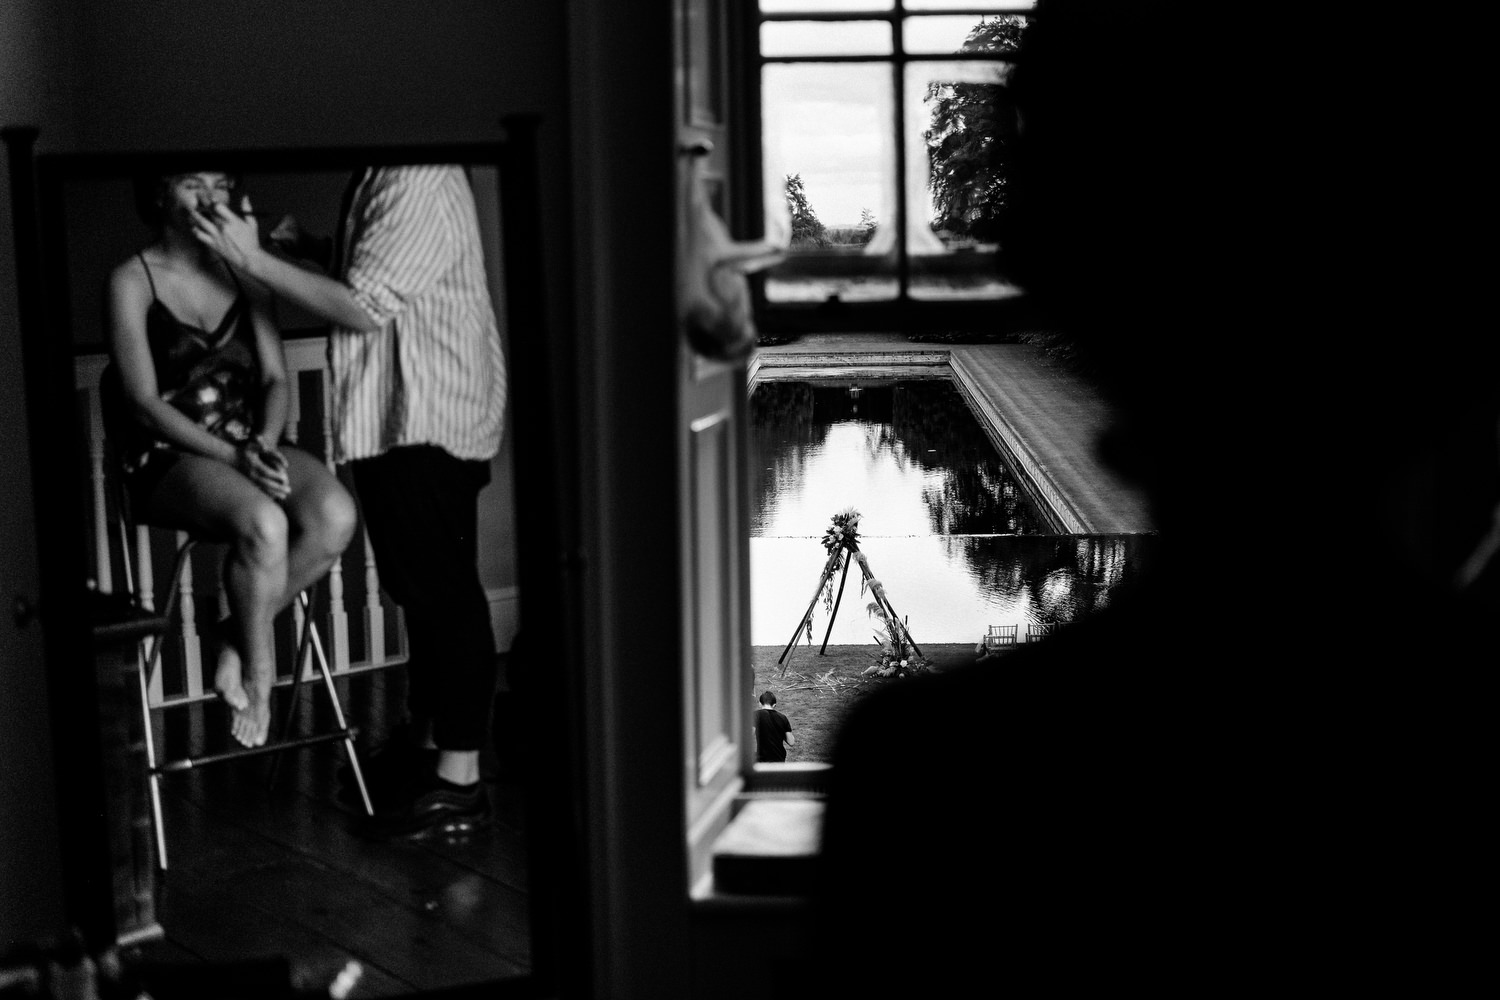 dmp0153_candid_preparation_morning_ballintubbert_photography_documentary_wedding